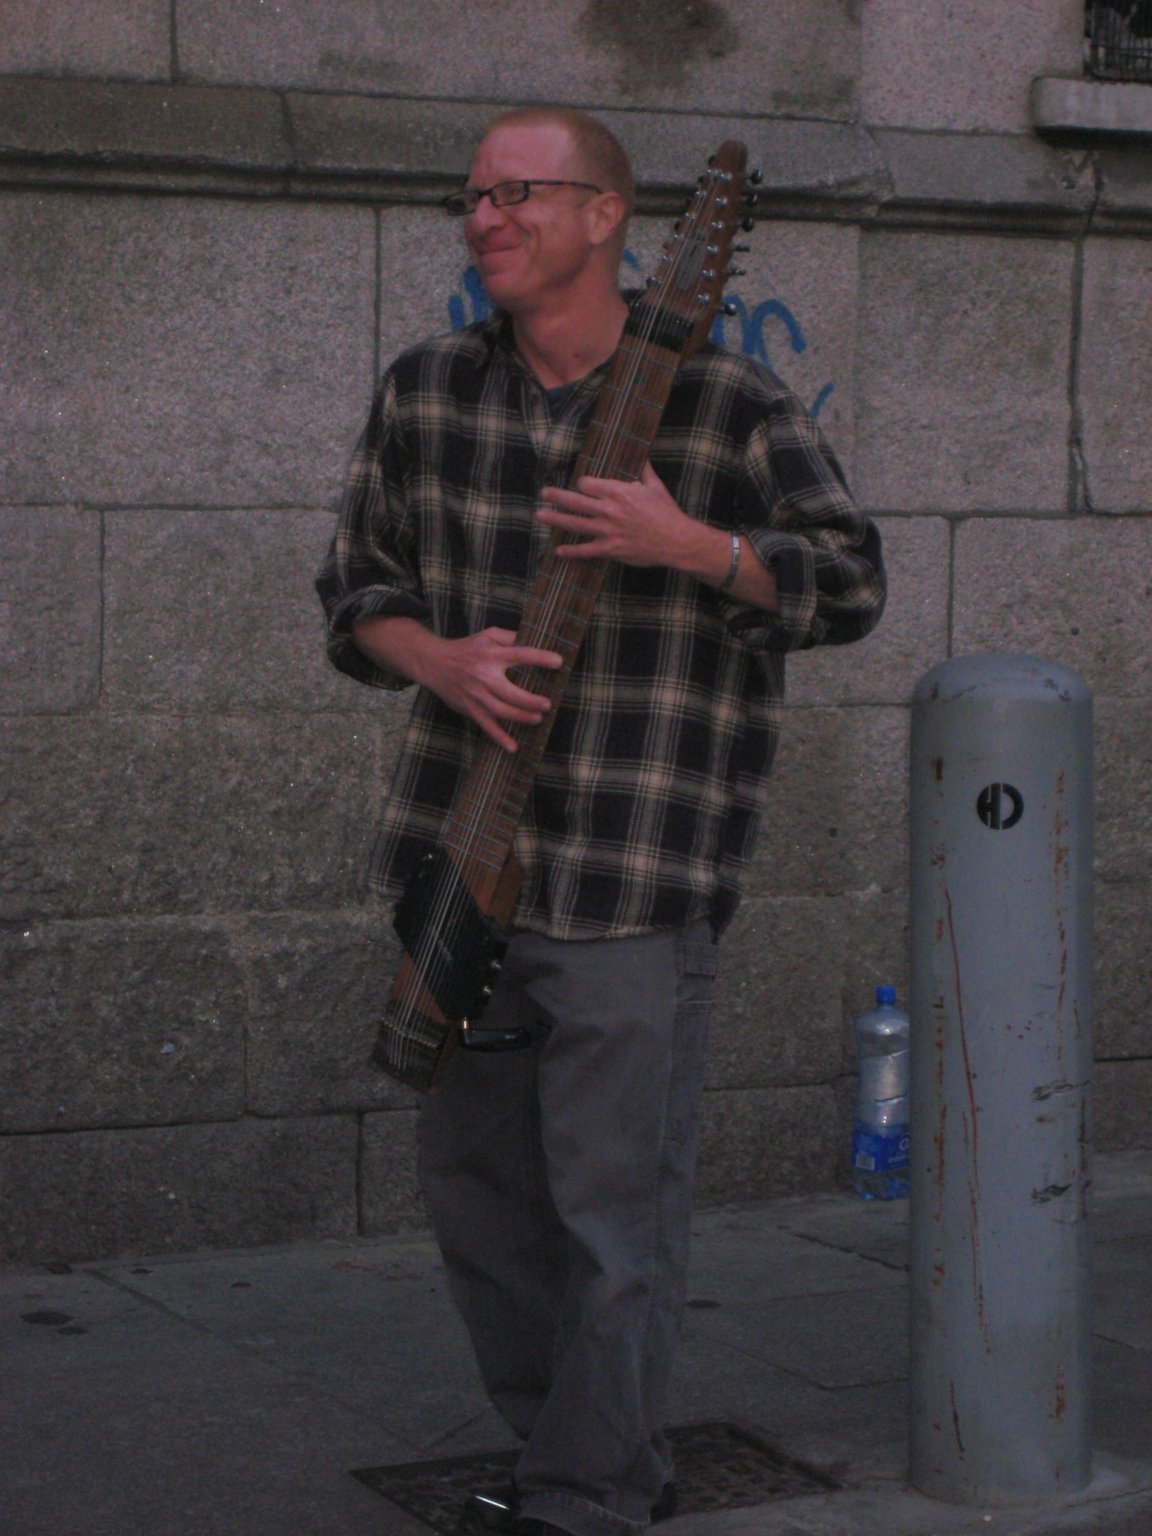 street musician with funny instrument in Dublin Templebar